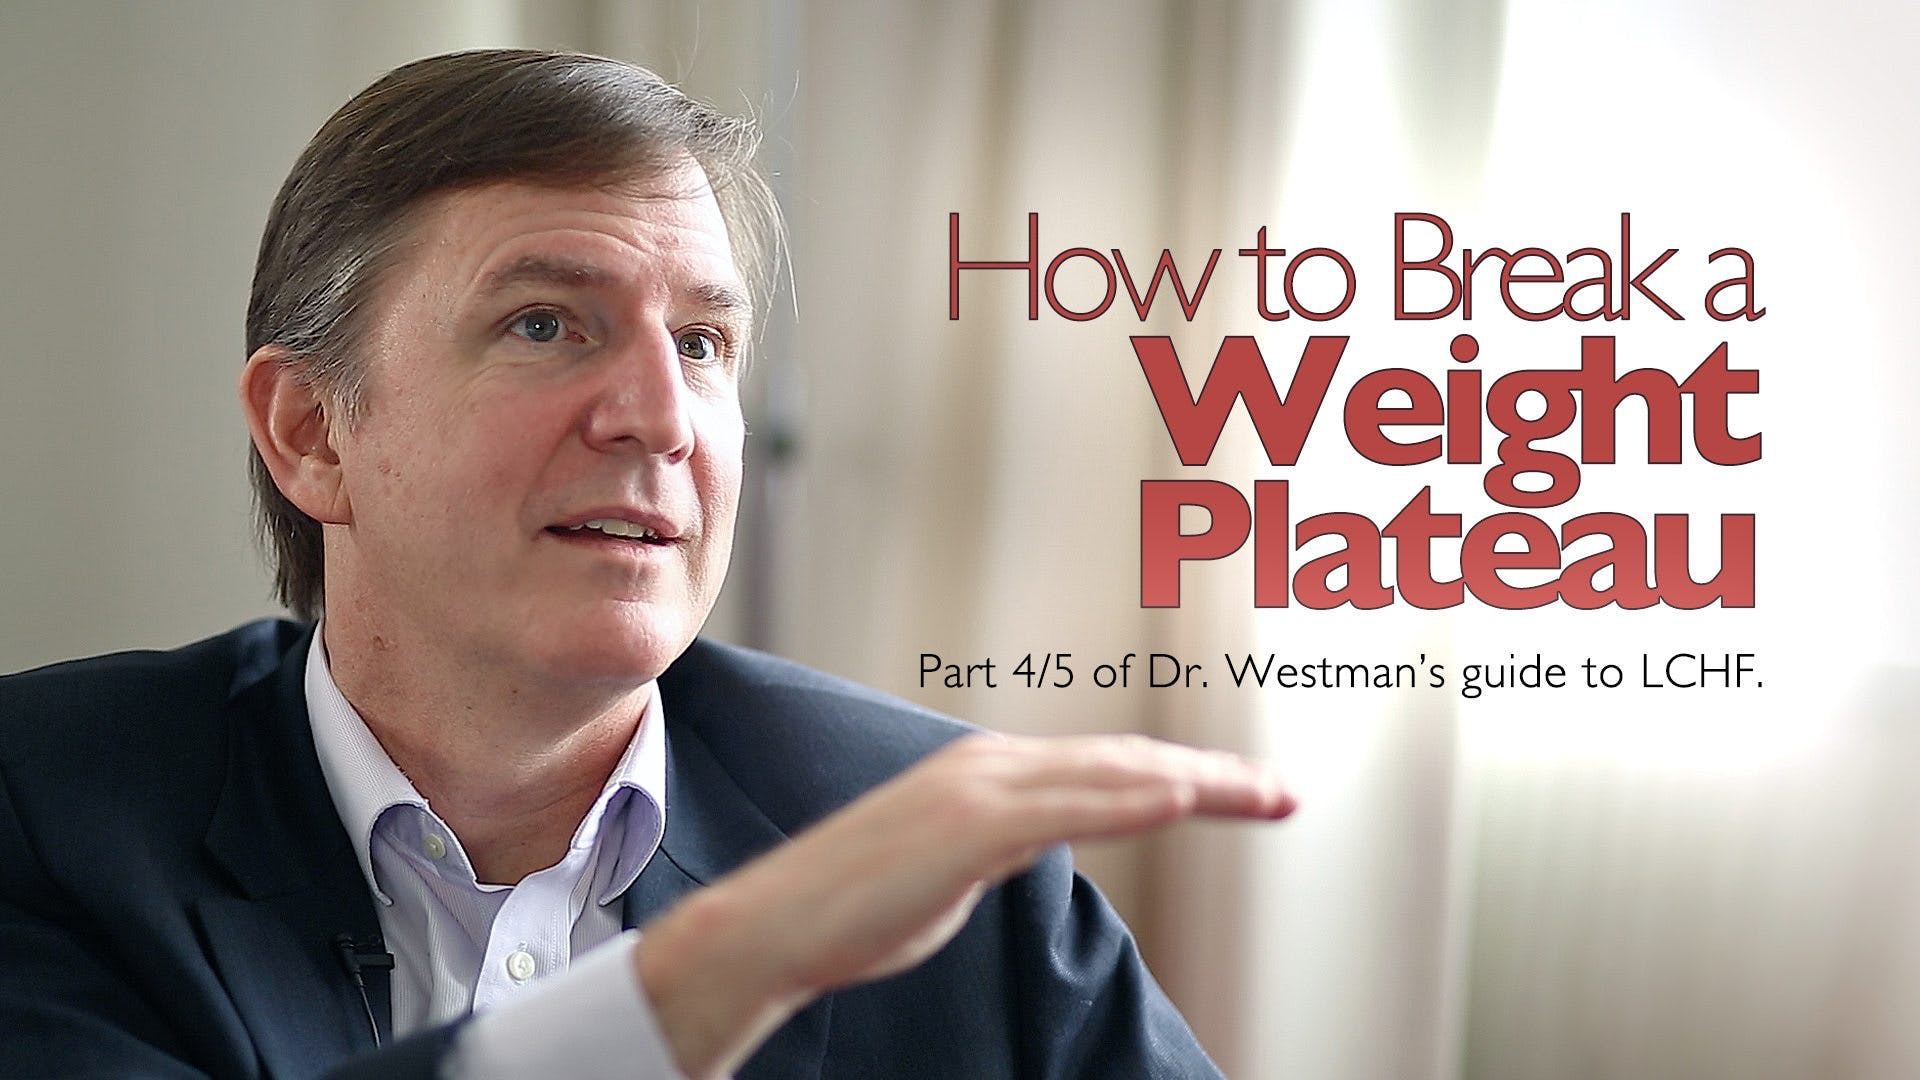 How to Break a Weight Plateau